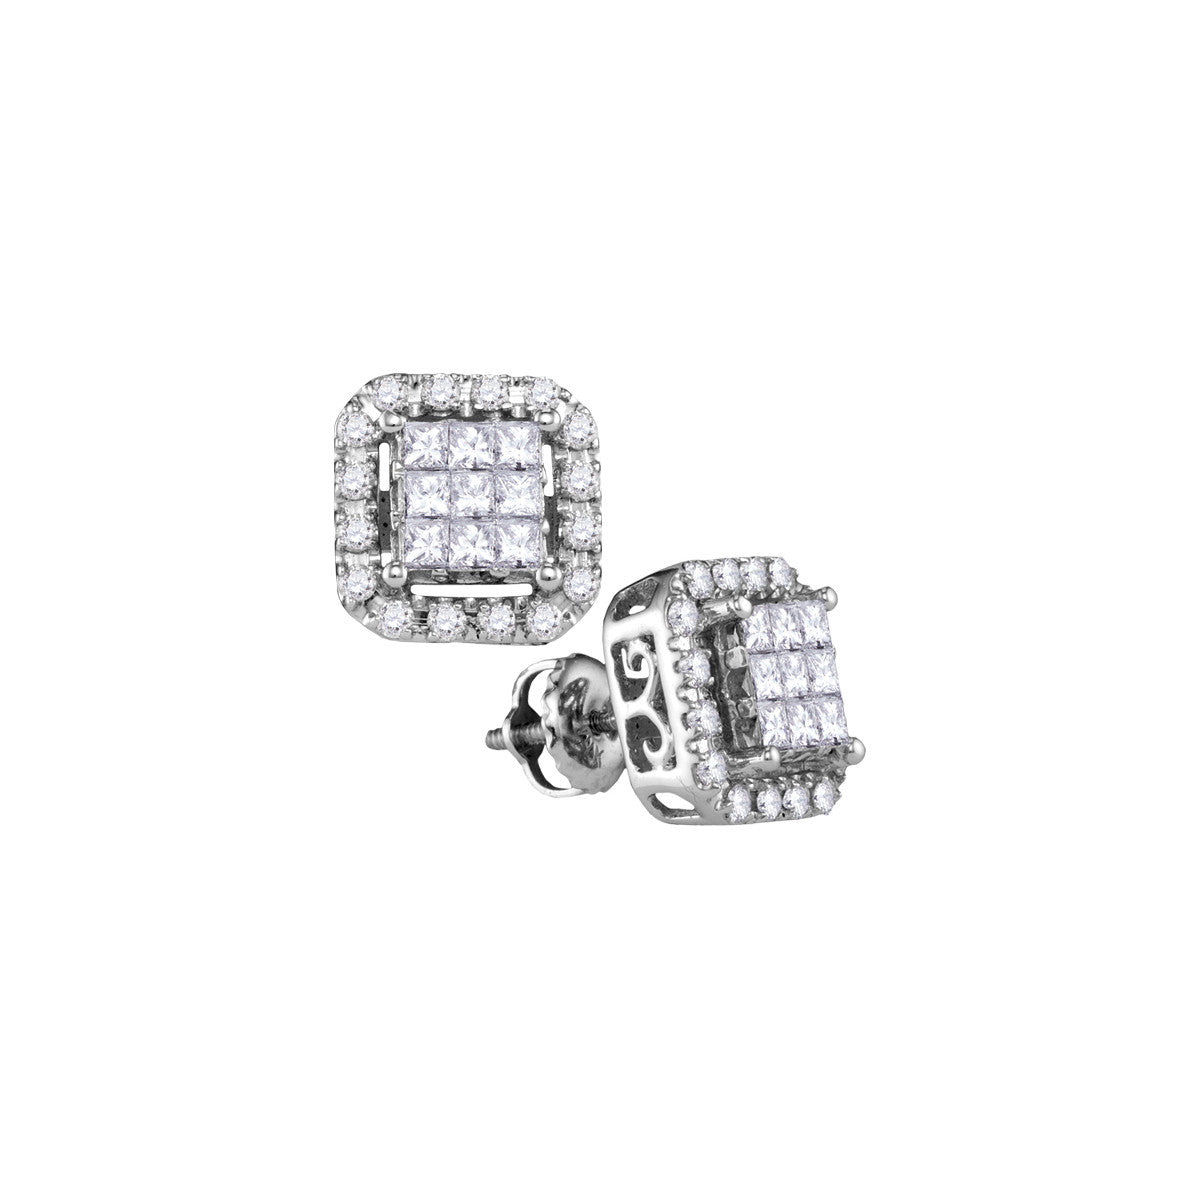 14kt White Gold Womens Princess Diamond Square Frame Cluster Stud Earrings 1.00 Cttw 107352 - shirin-diamonds